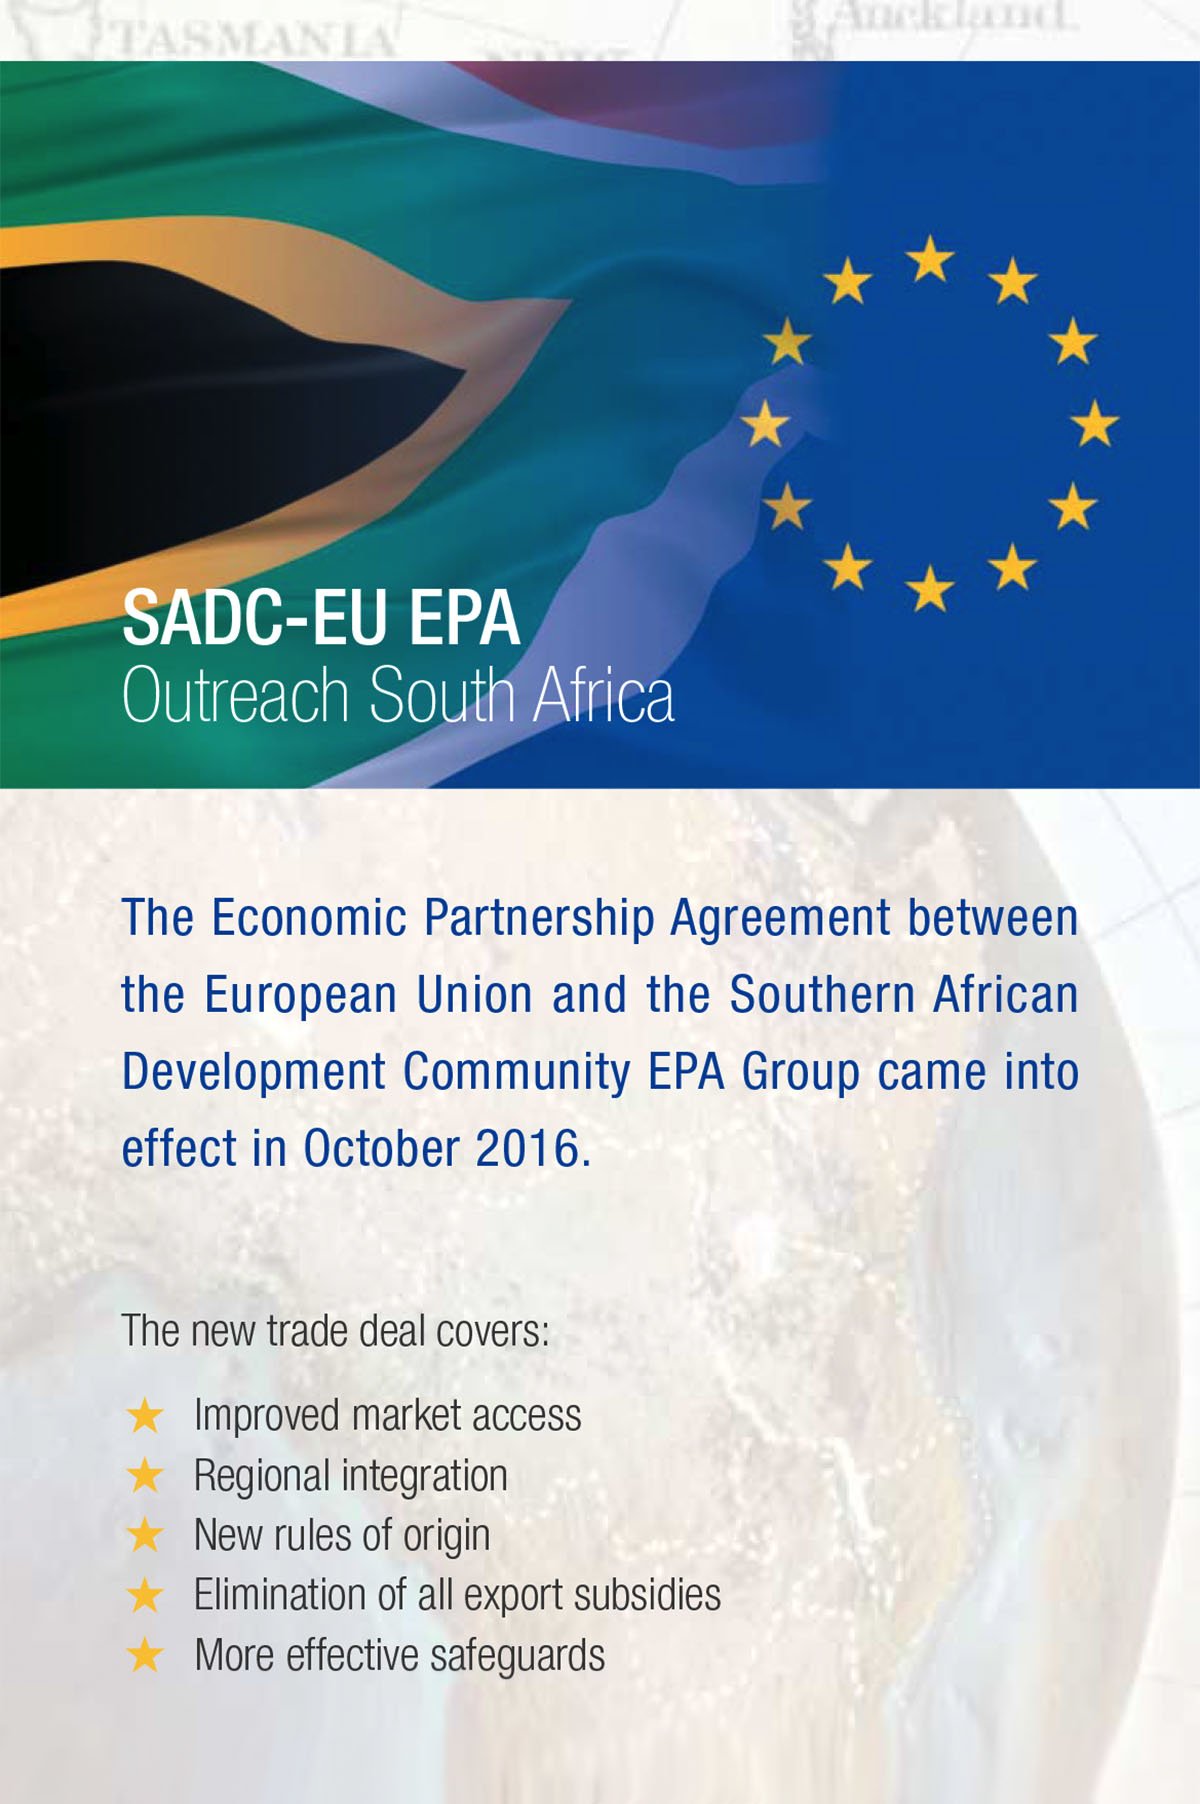 SADC-EU EPA Outreach South Africa - Fold-out Brochure